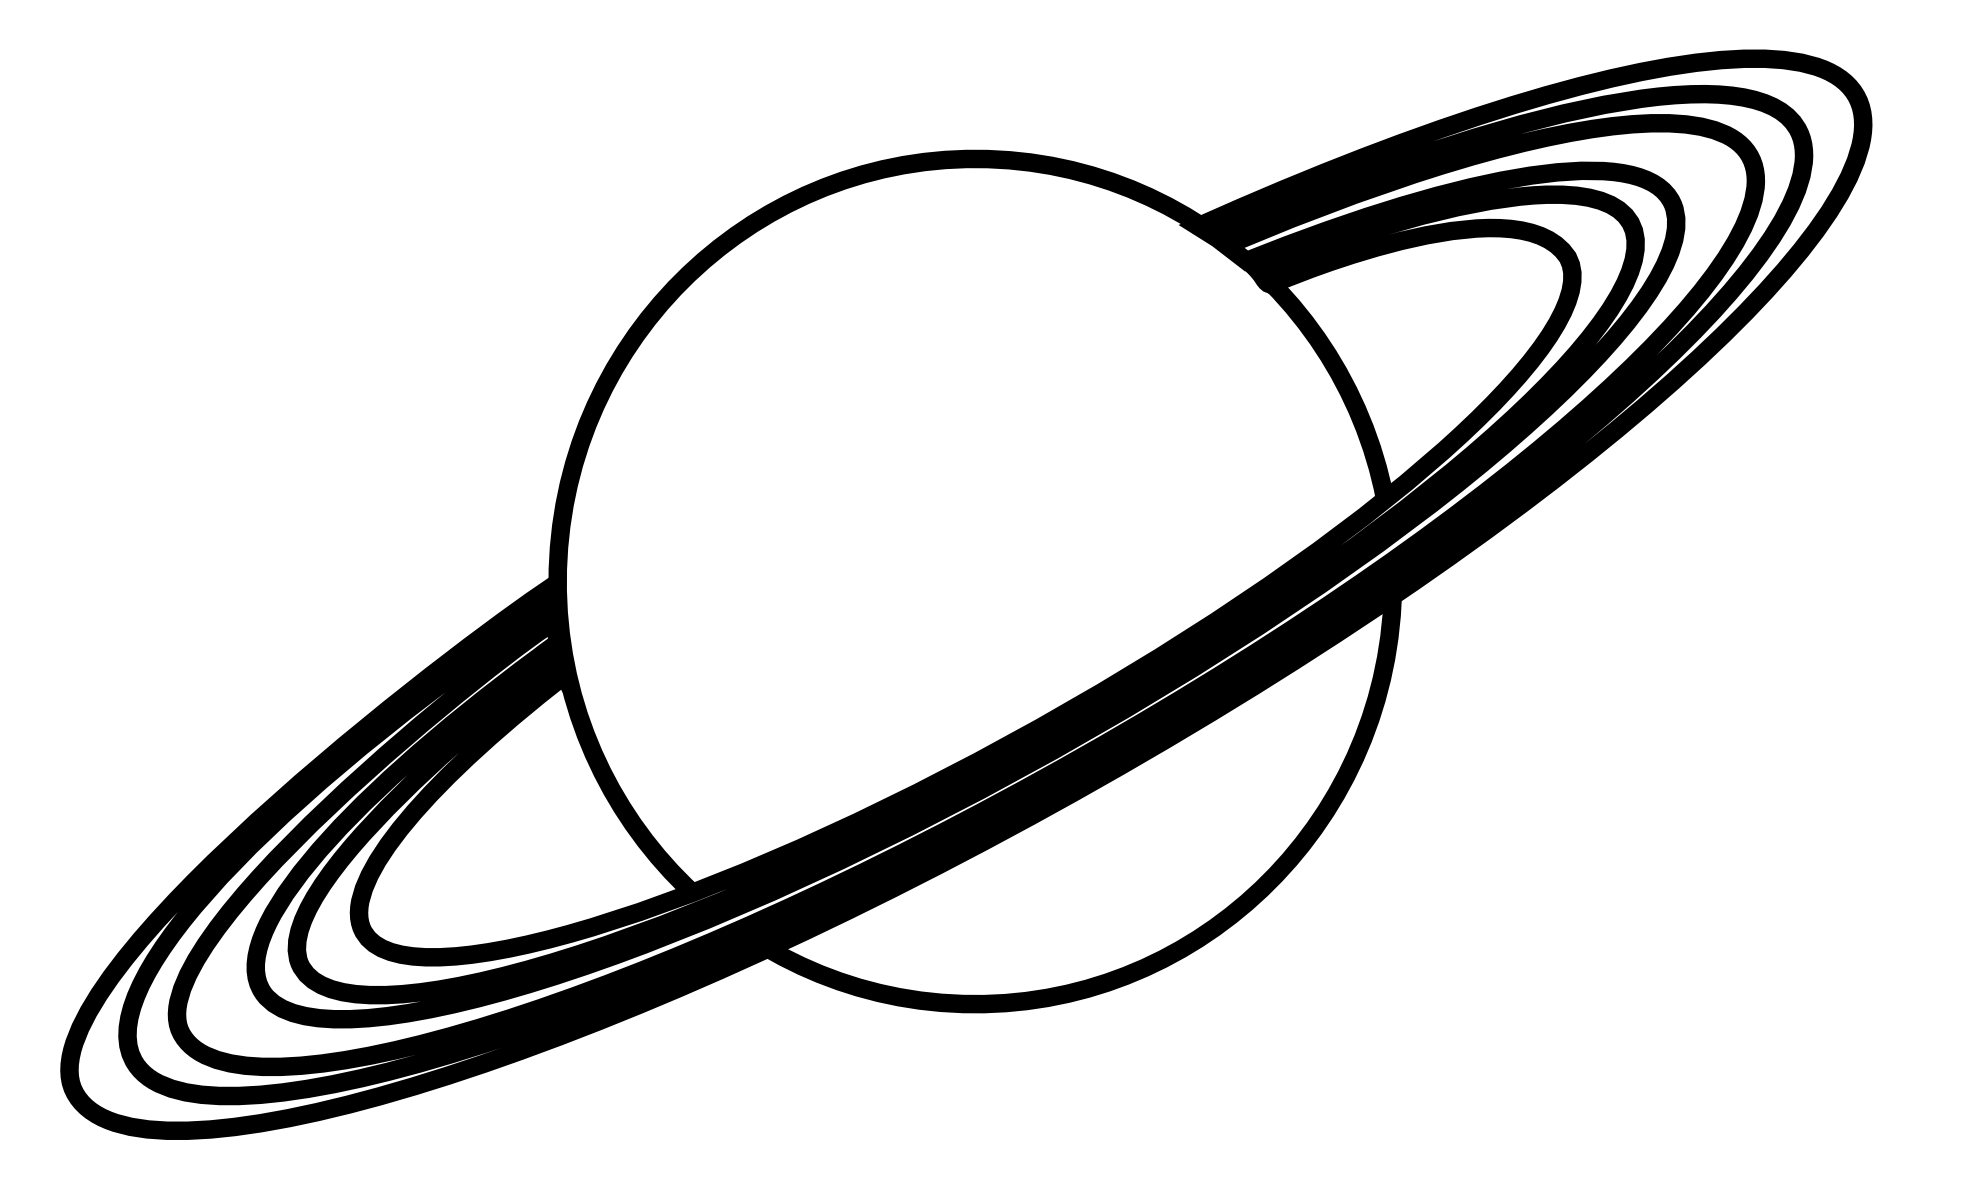 planets clipart black and white - photo #17